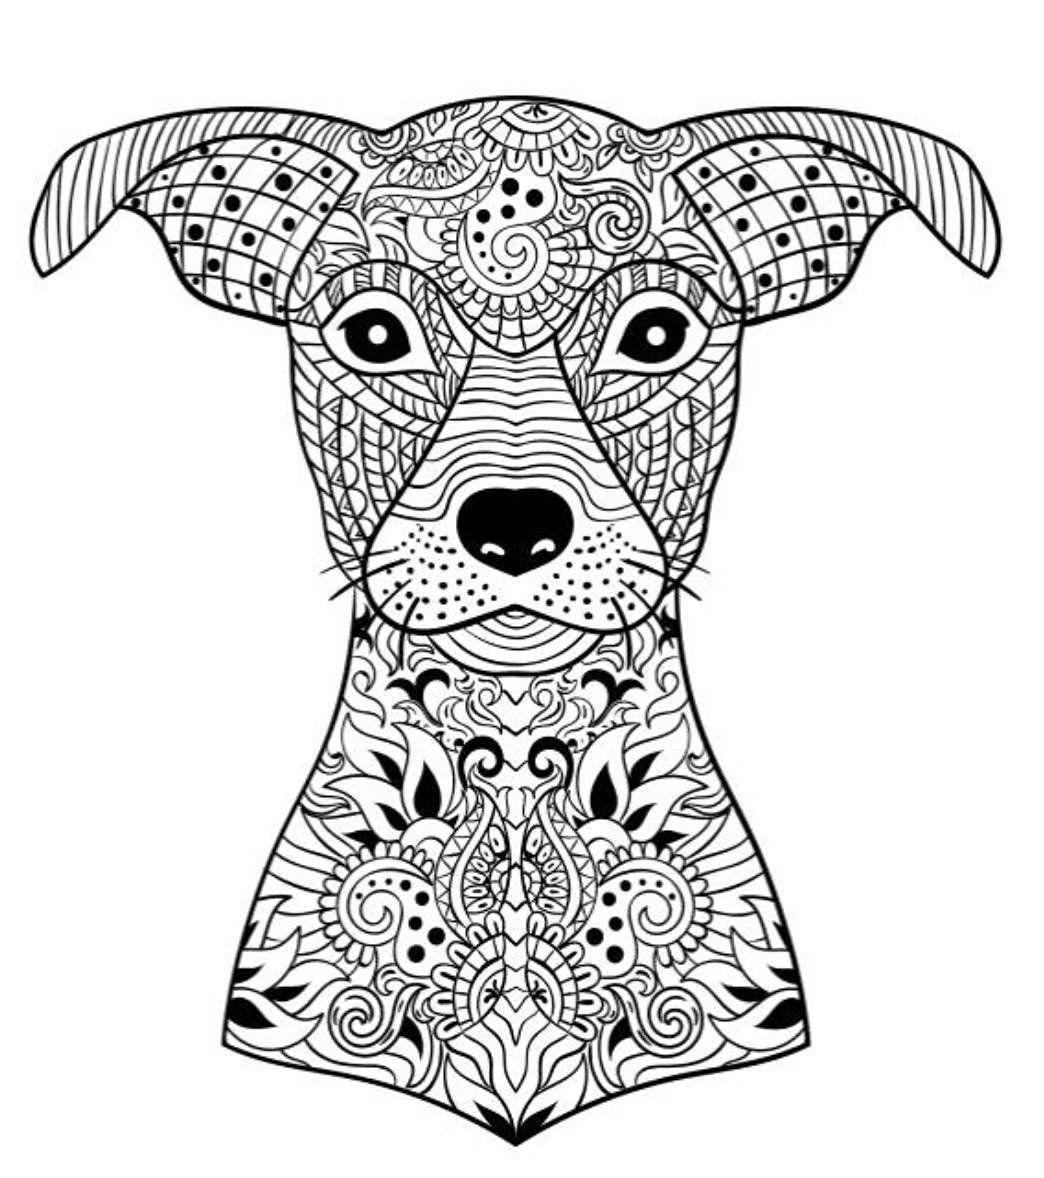 coloring pages for adults dogs 10 toothy adult coloring pages printable off the cusp coloring pages for adults dogs